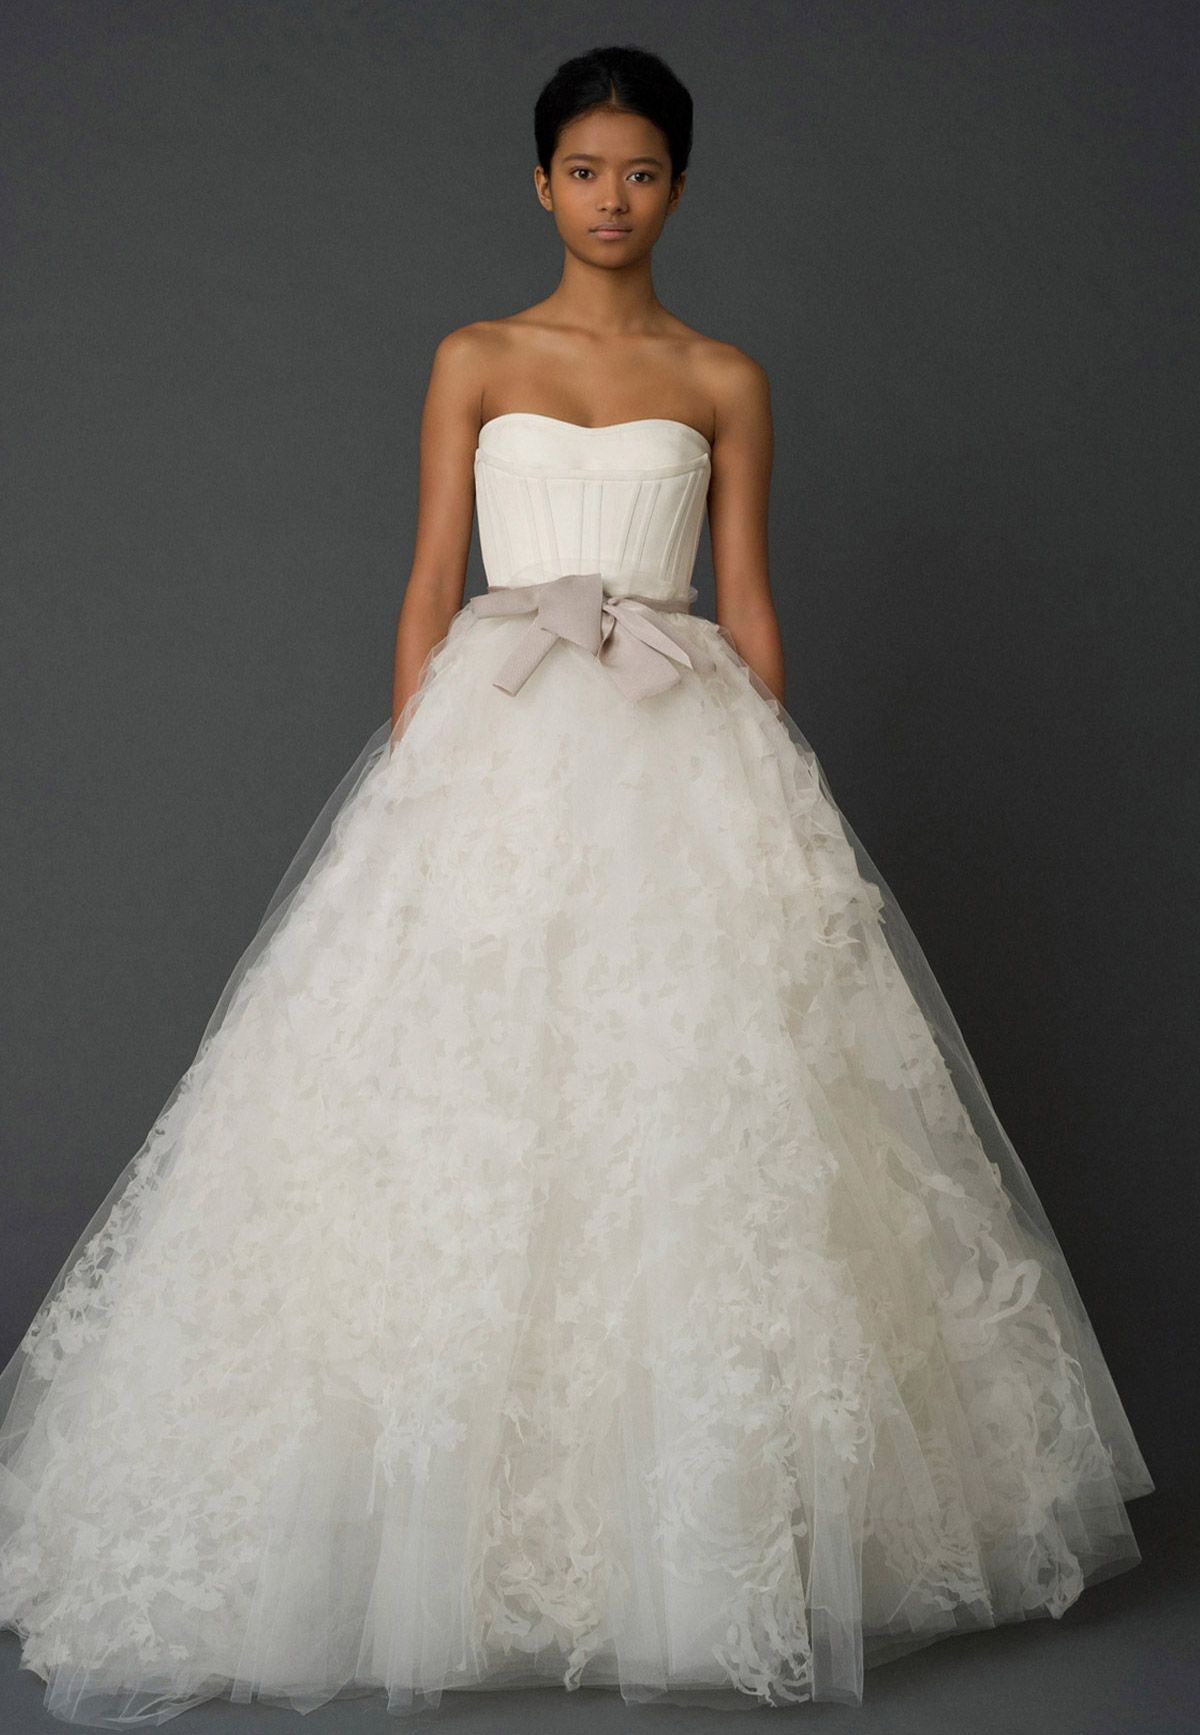 Wedding Dresses | Vera wang robe de marié